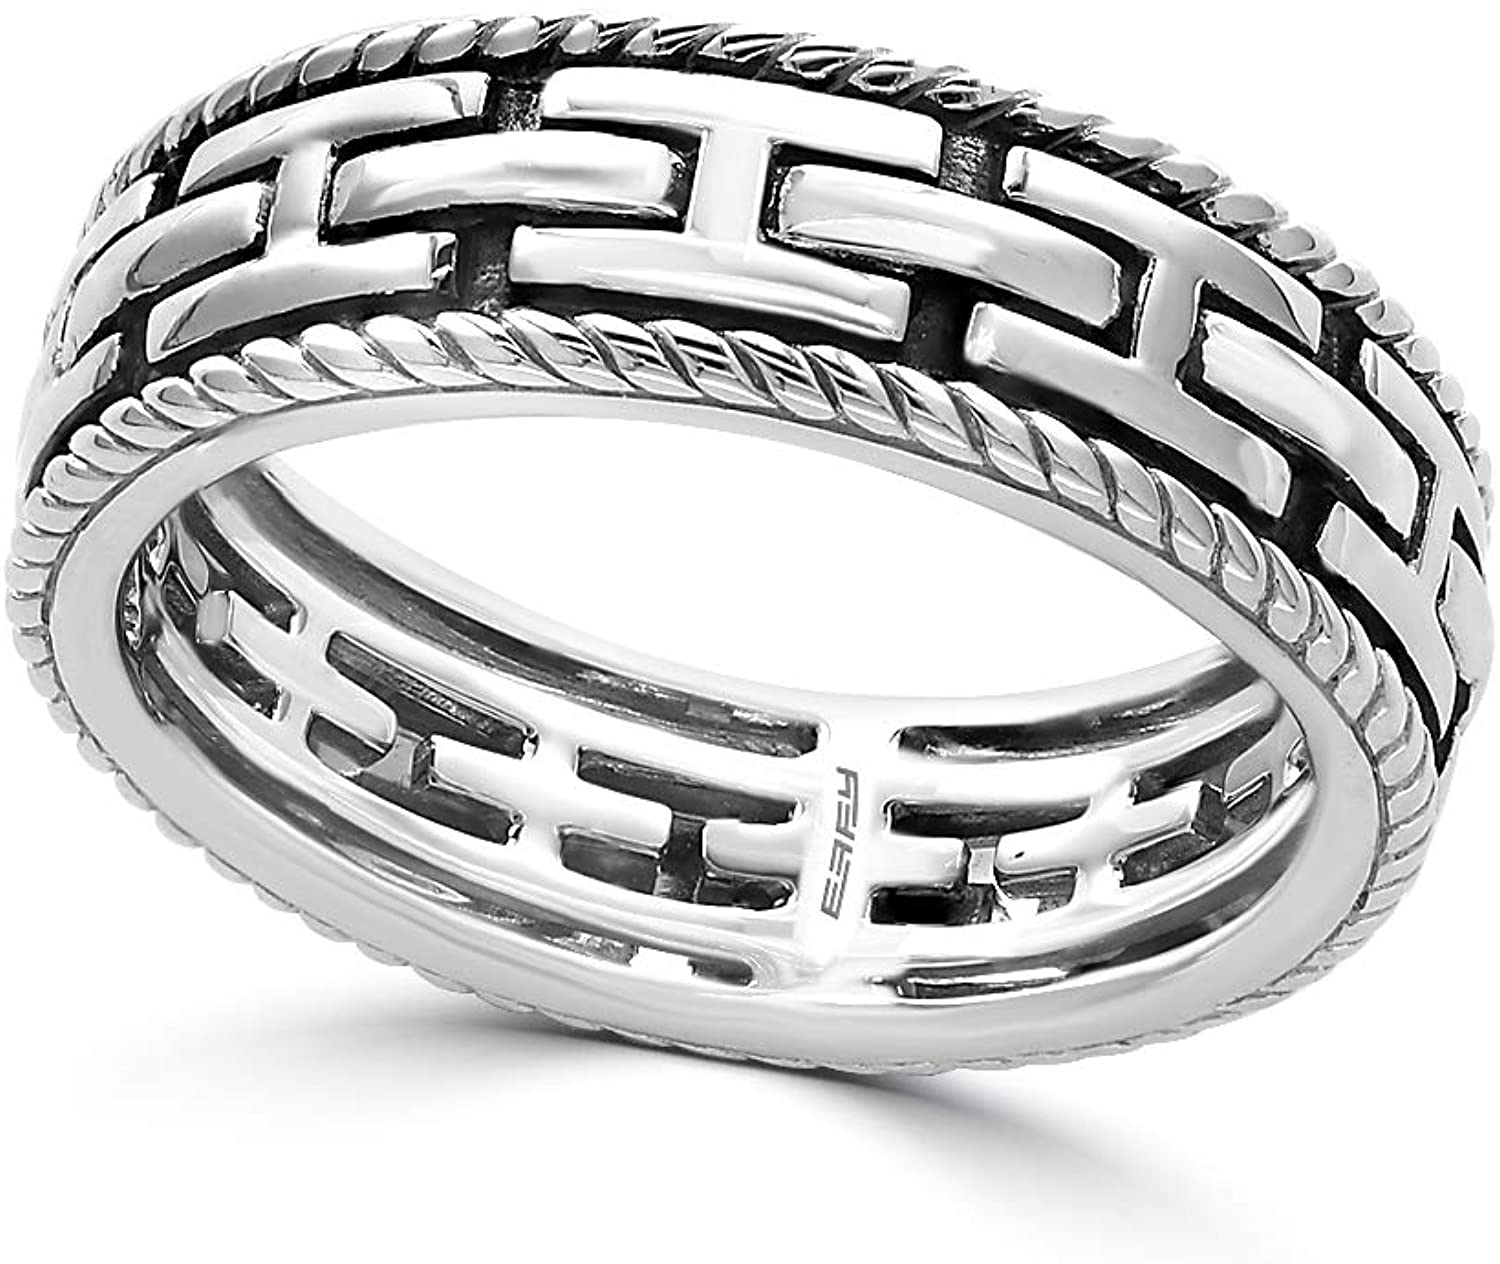 Effy 925 Sterling Silver Cable Ring IRS0J169S0